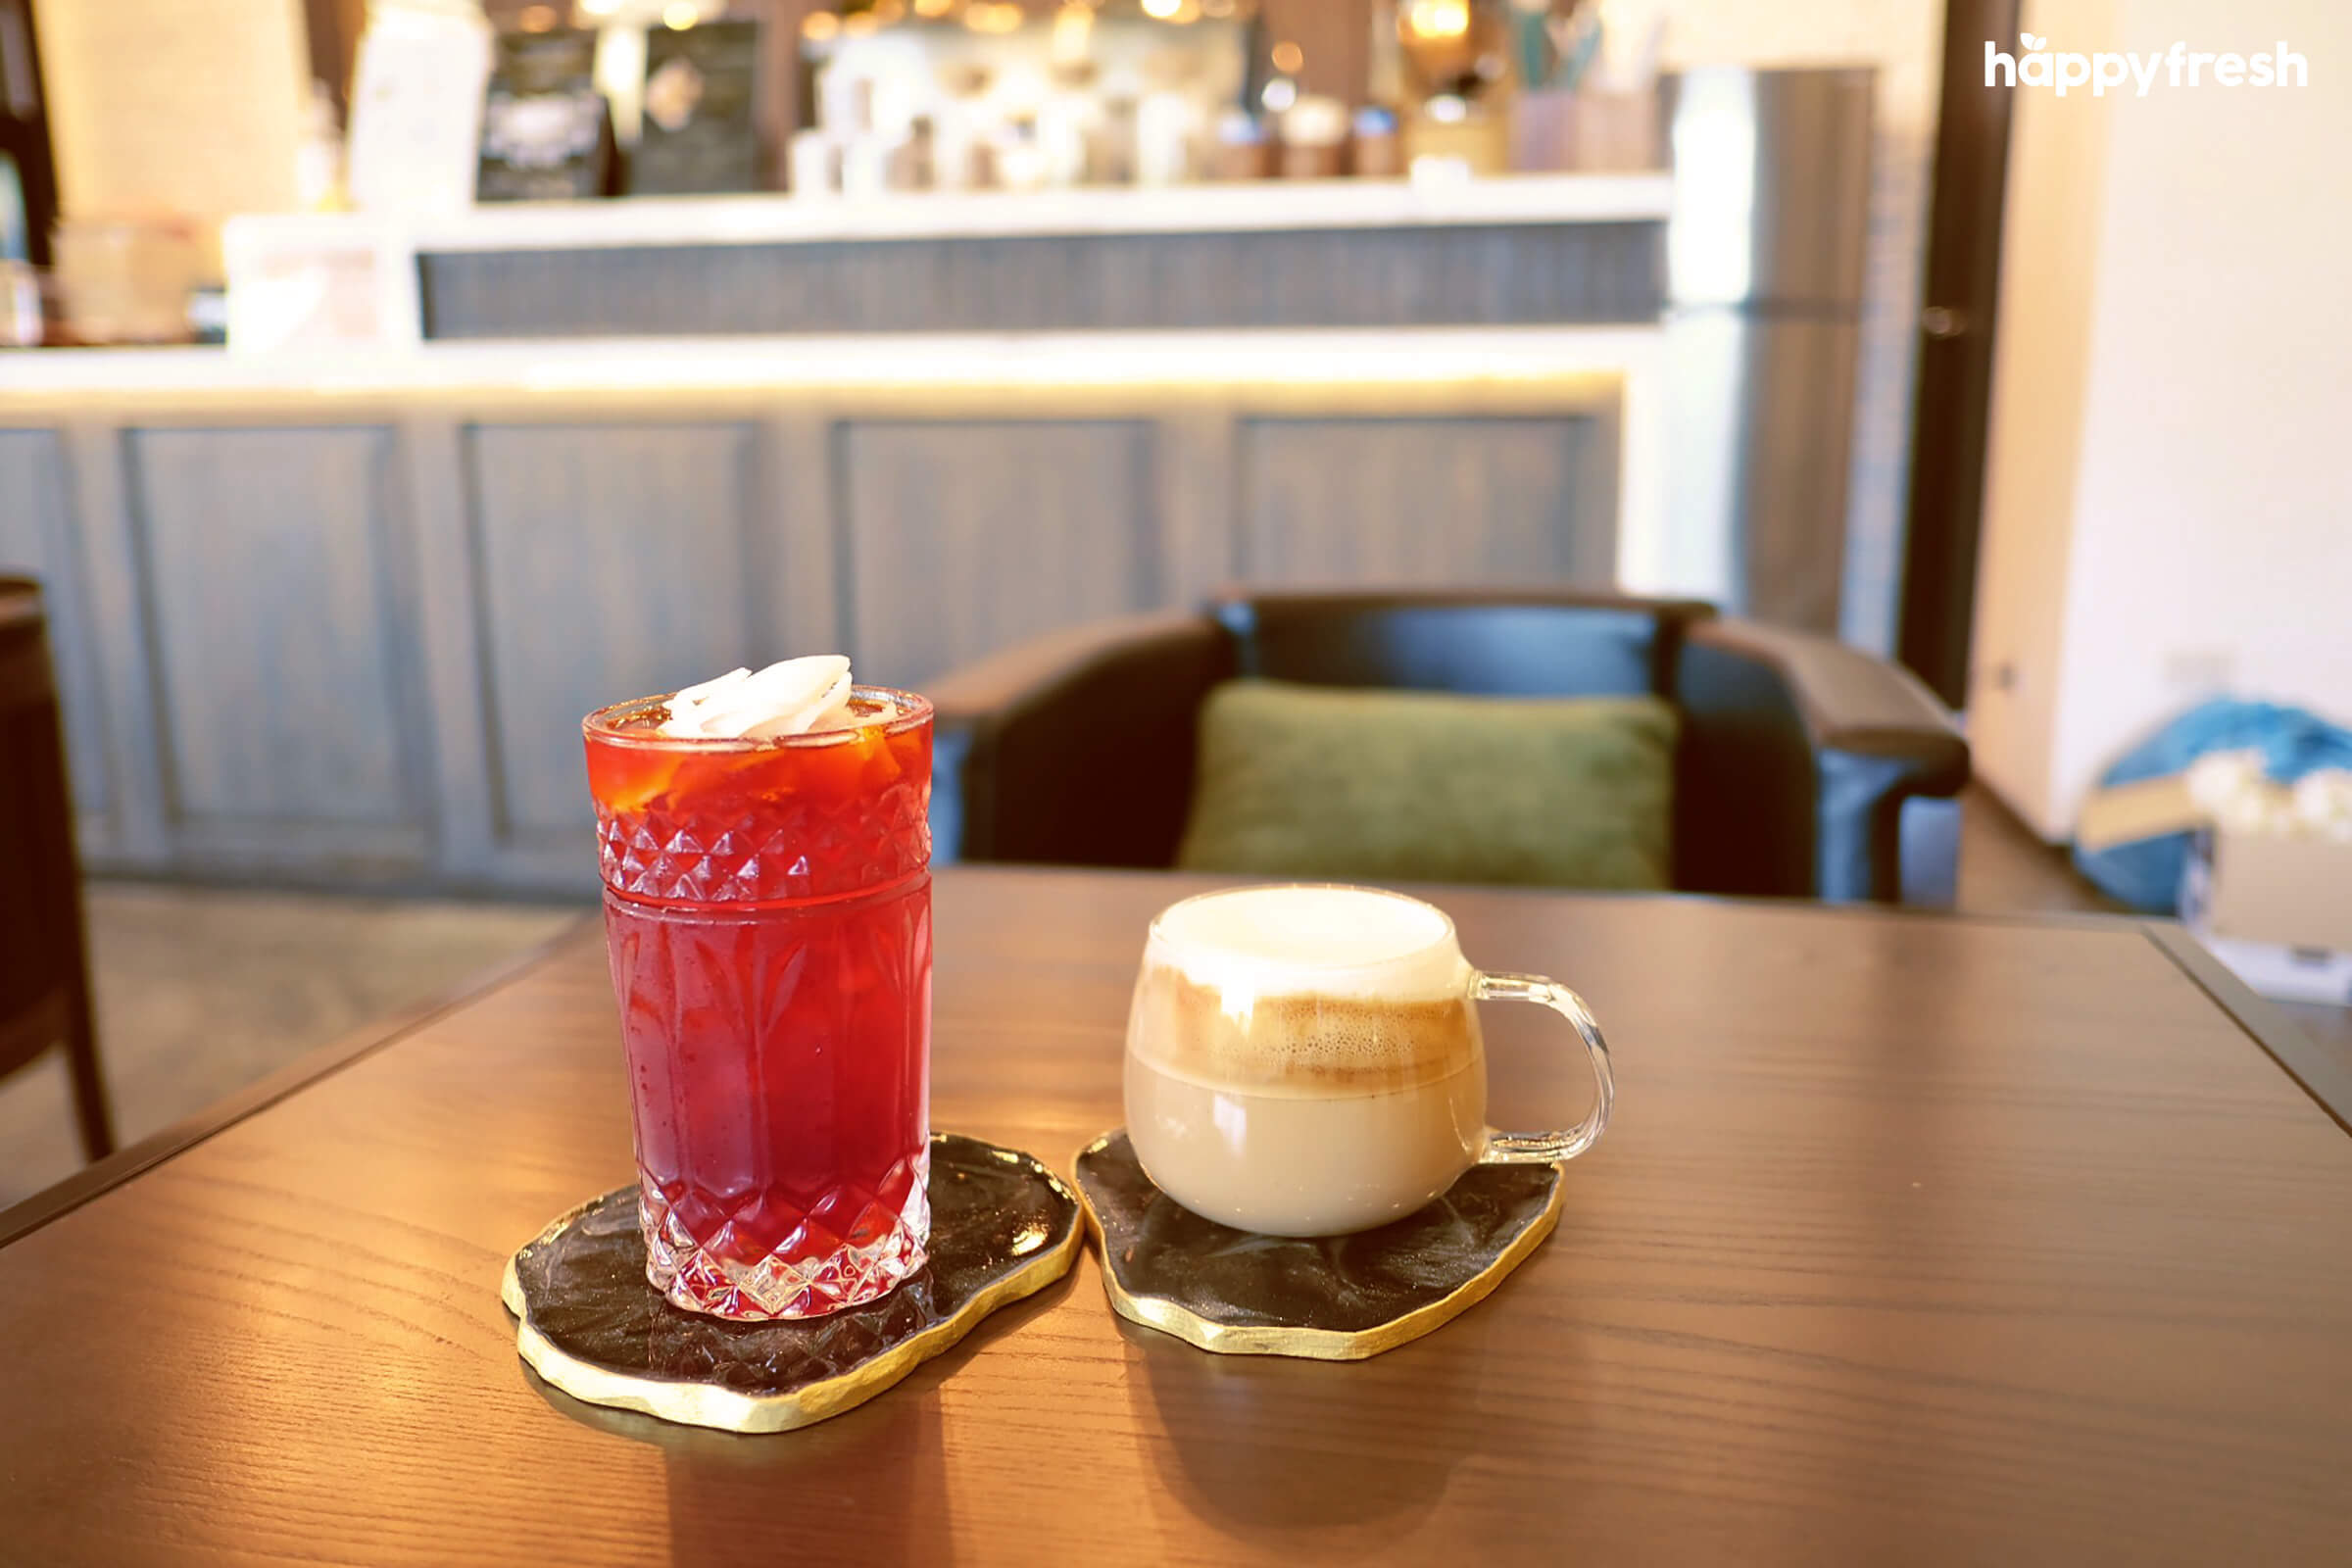 HappyFresh_Review_5_Cafes_Bookstores_In_Bangkok_The_Author_Drinks